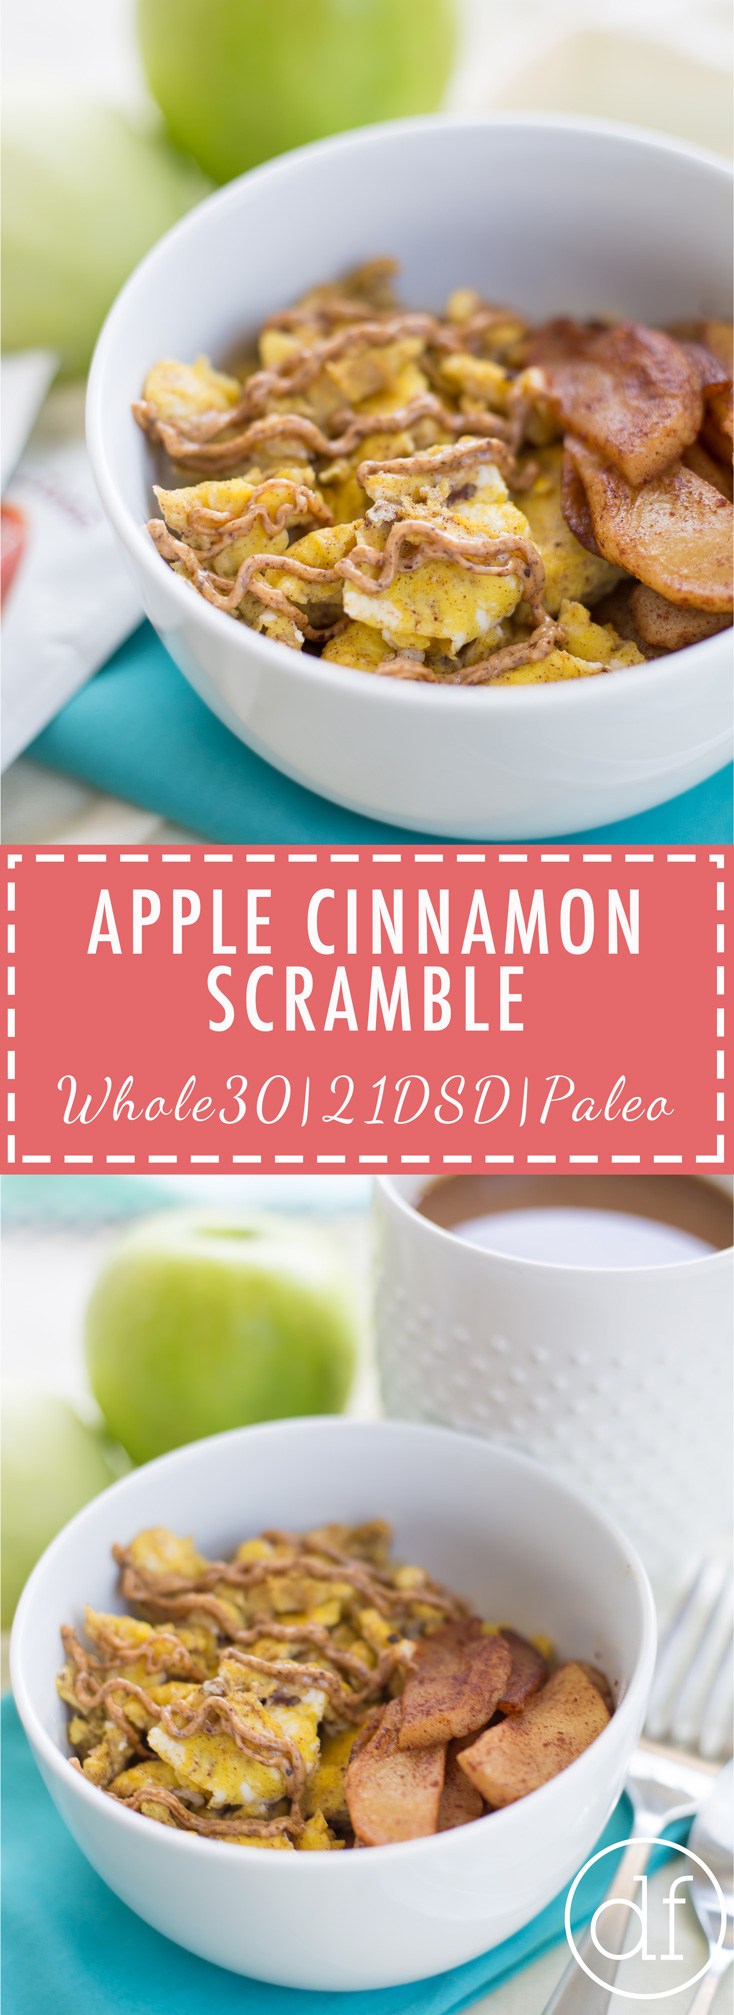 Apple Cinnamon Scramble, 21DSD, 21DSD Approved, 21 Day Sugar Detox, Breakfast, Paleo, Whole30, Easy Recipes, Paleo Recipes, Apple Cinnamon, Breakfast Scramble, 21DSD Coach,